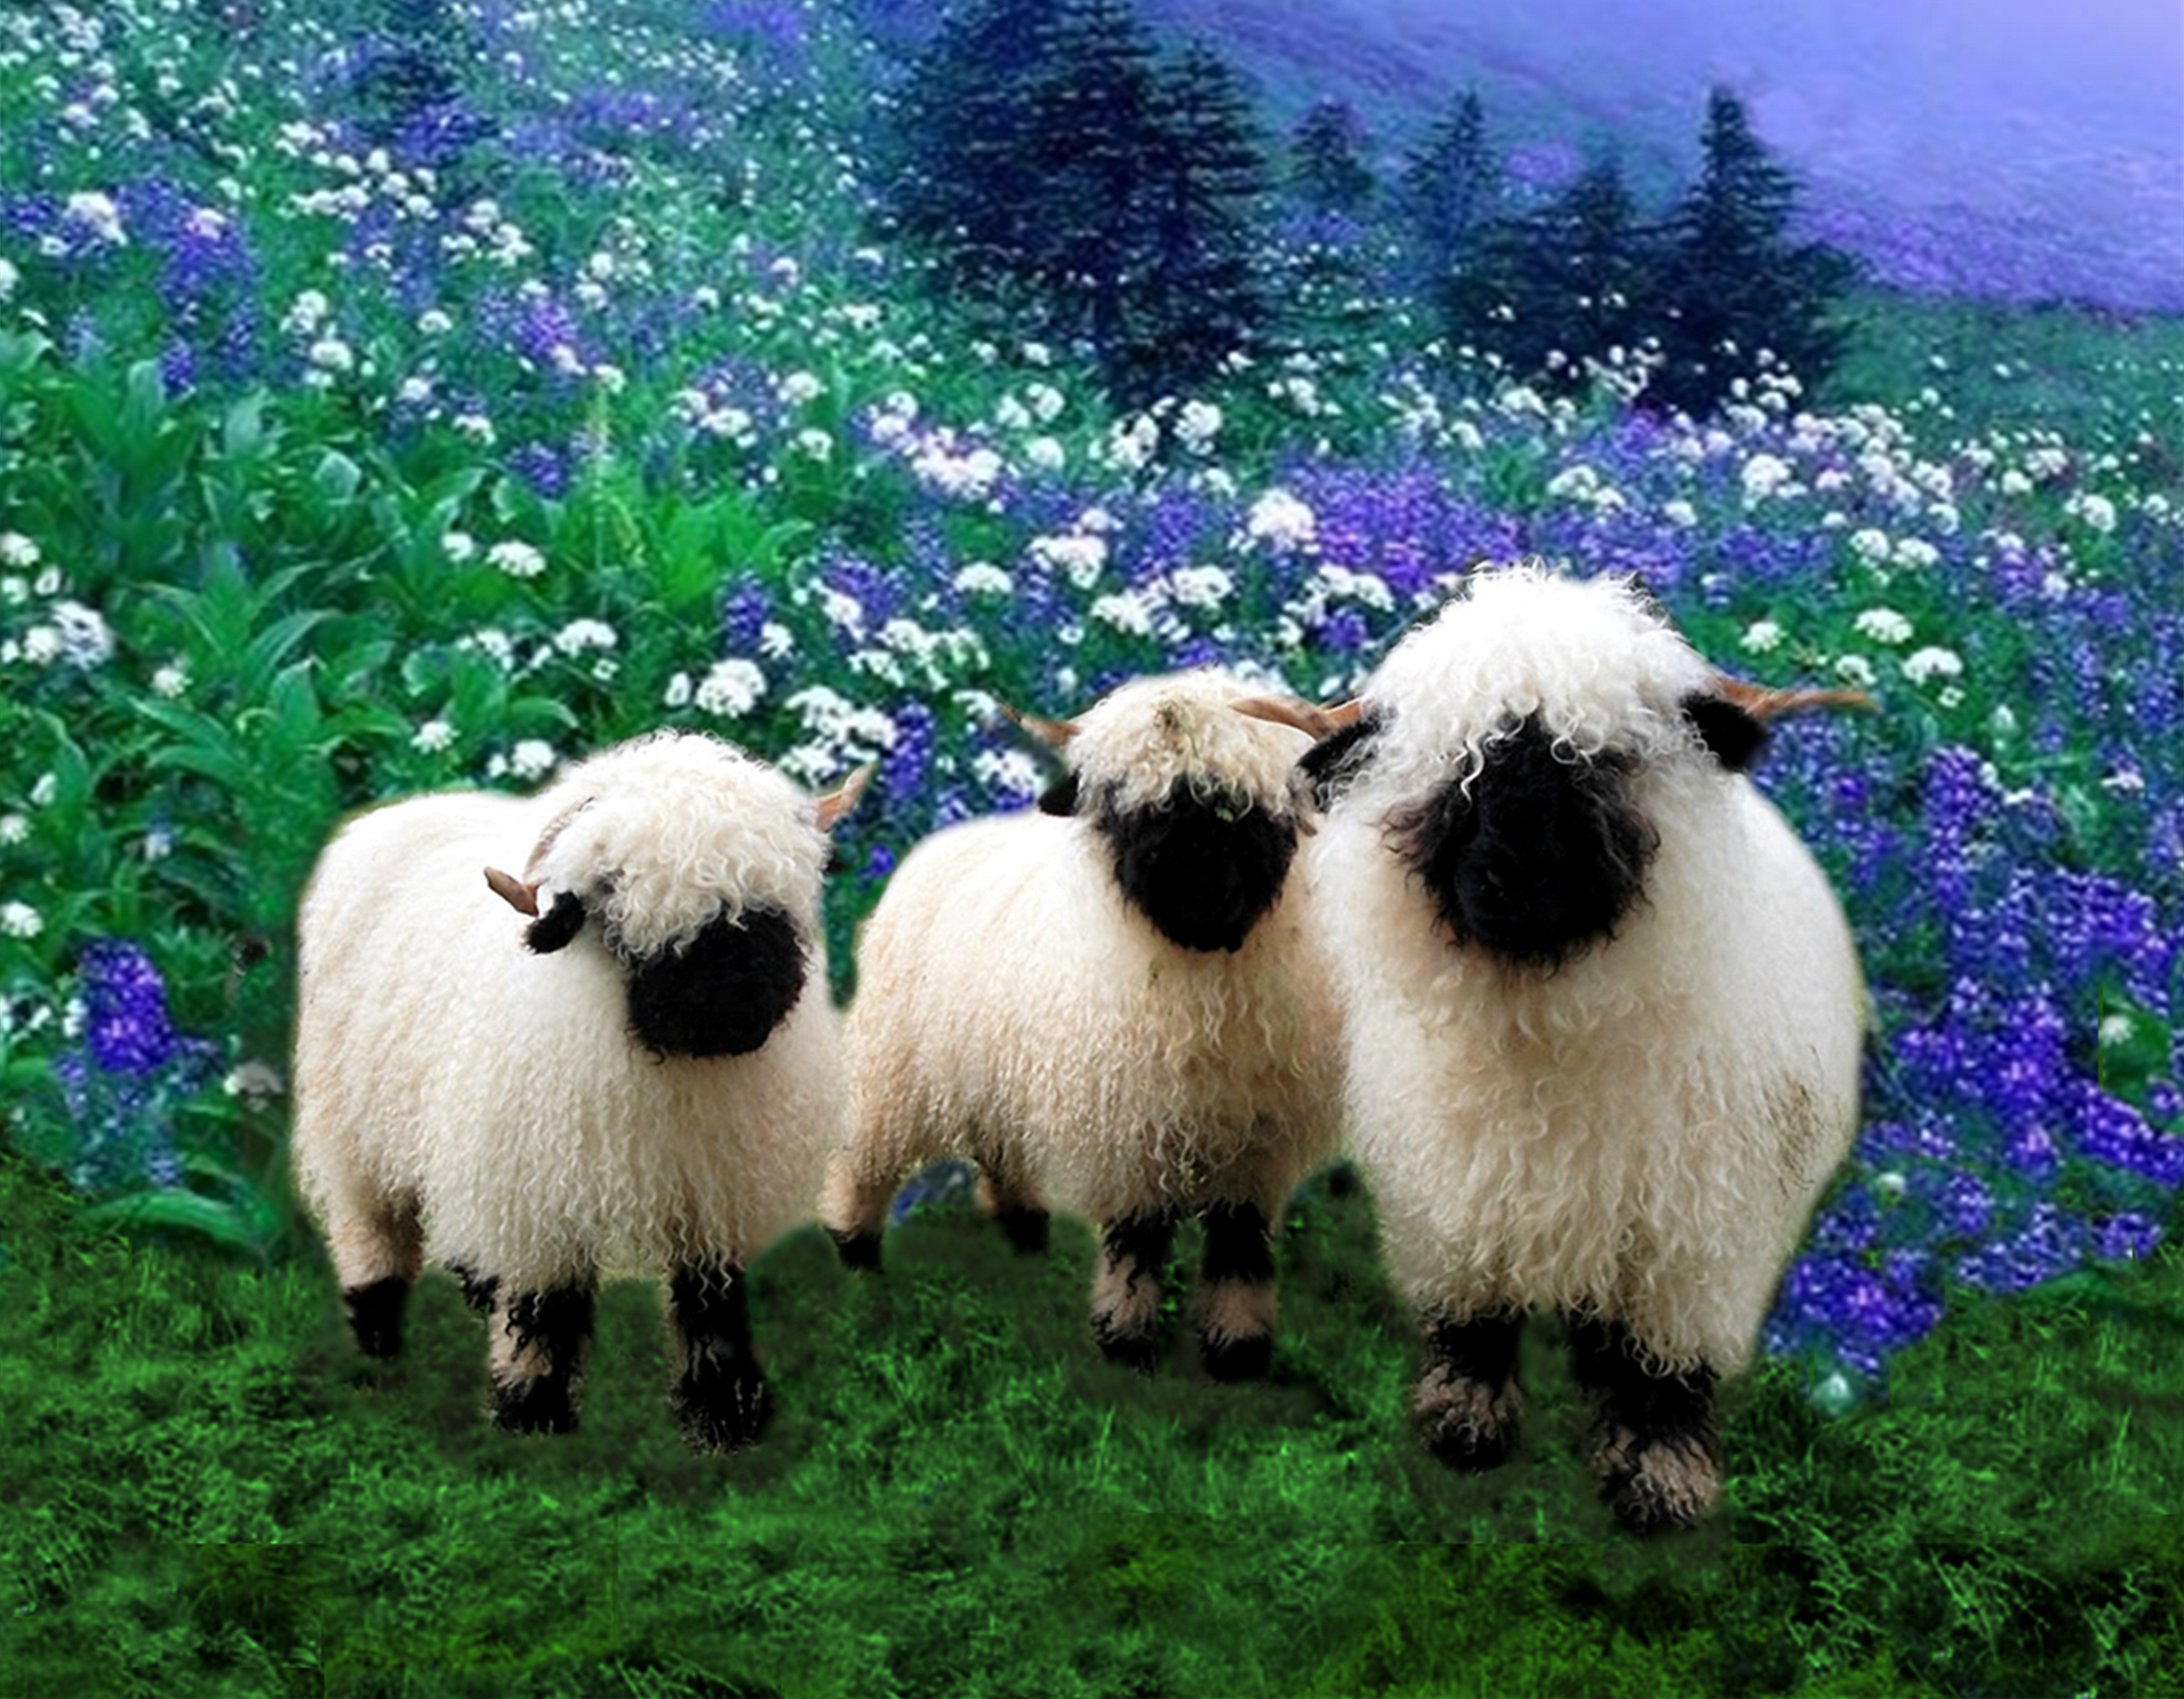 Black nosed sheep clipart 20 free Cliparts | Download ...